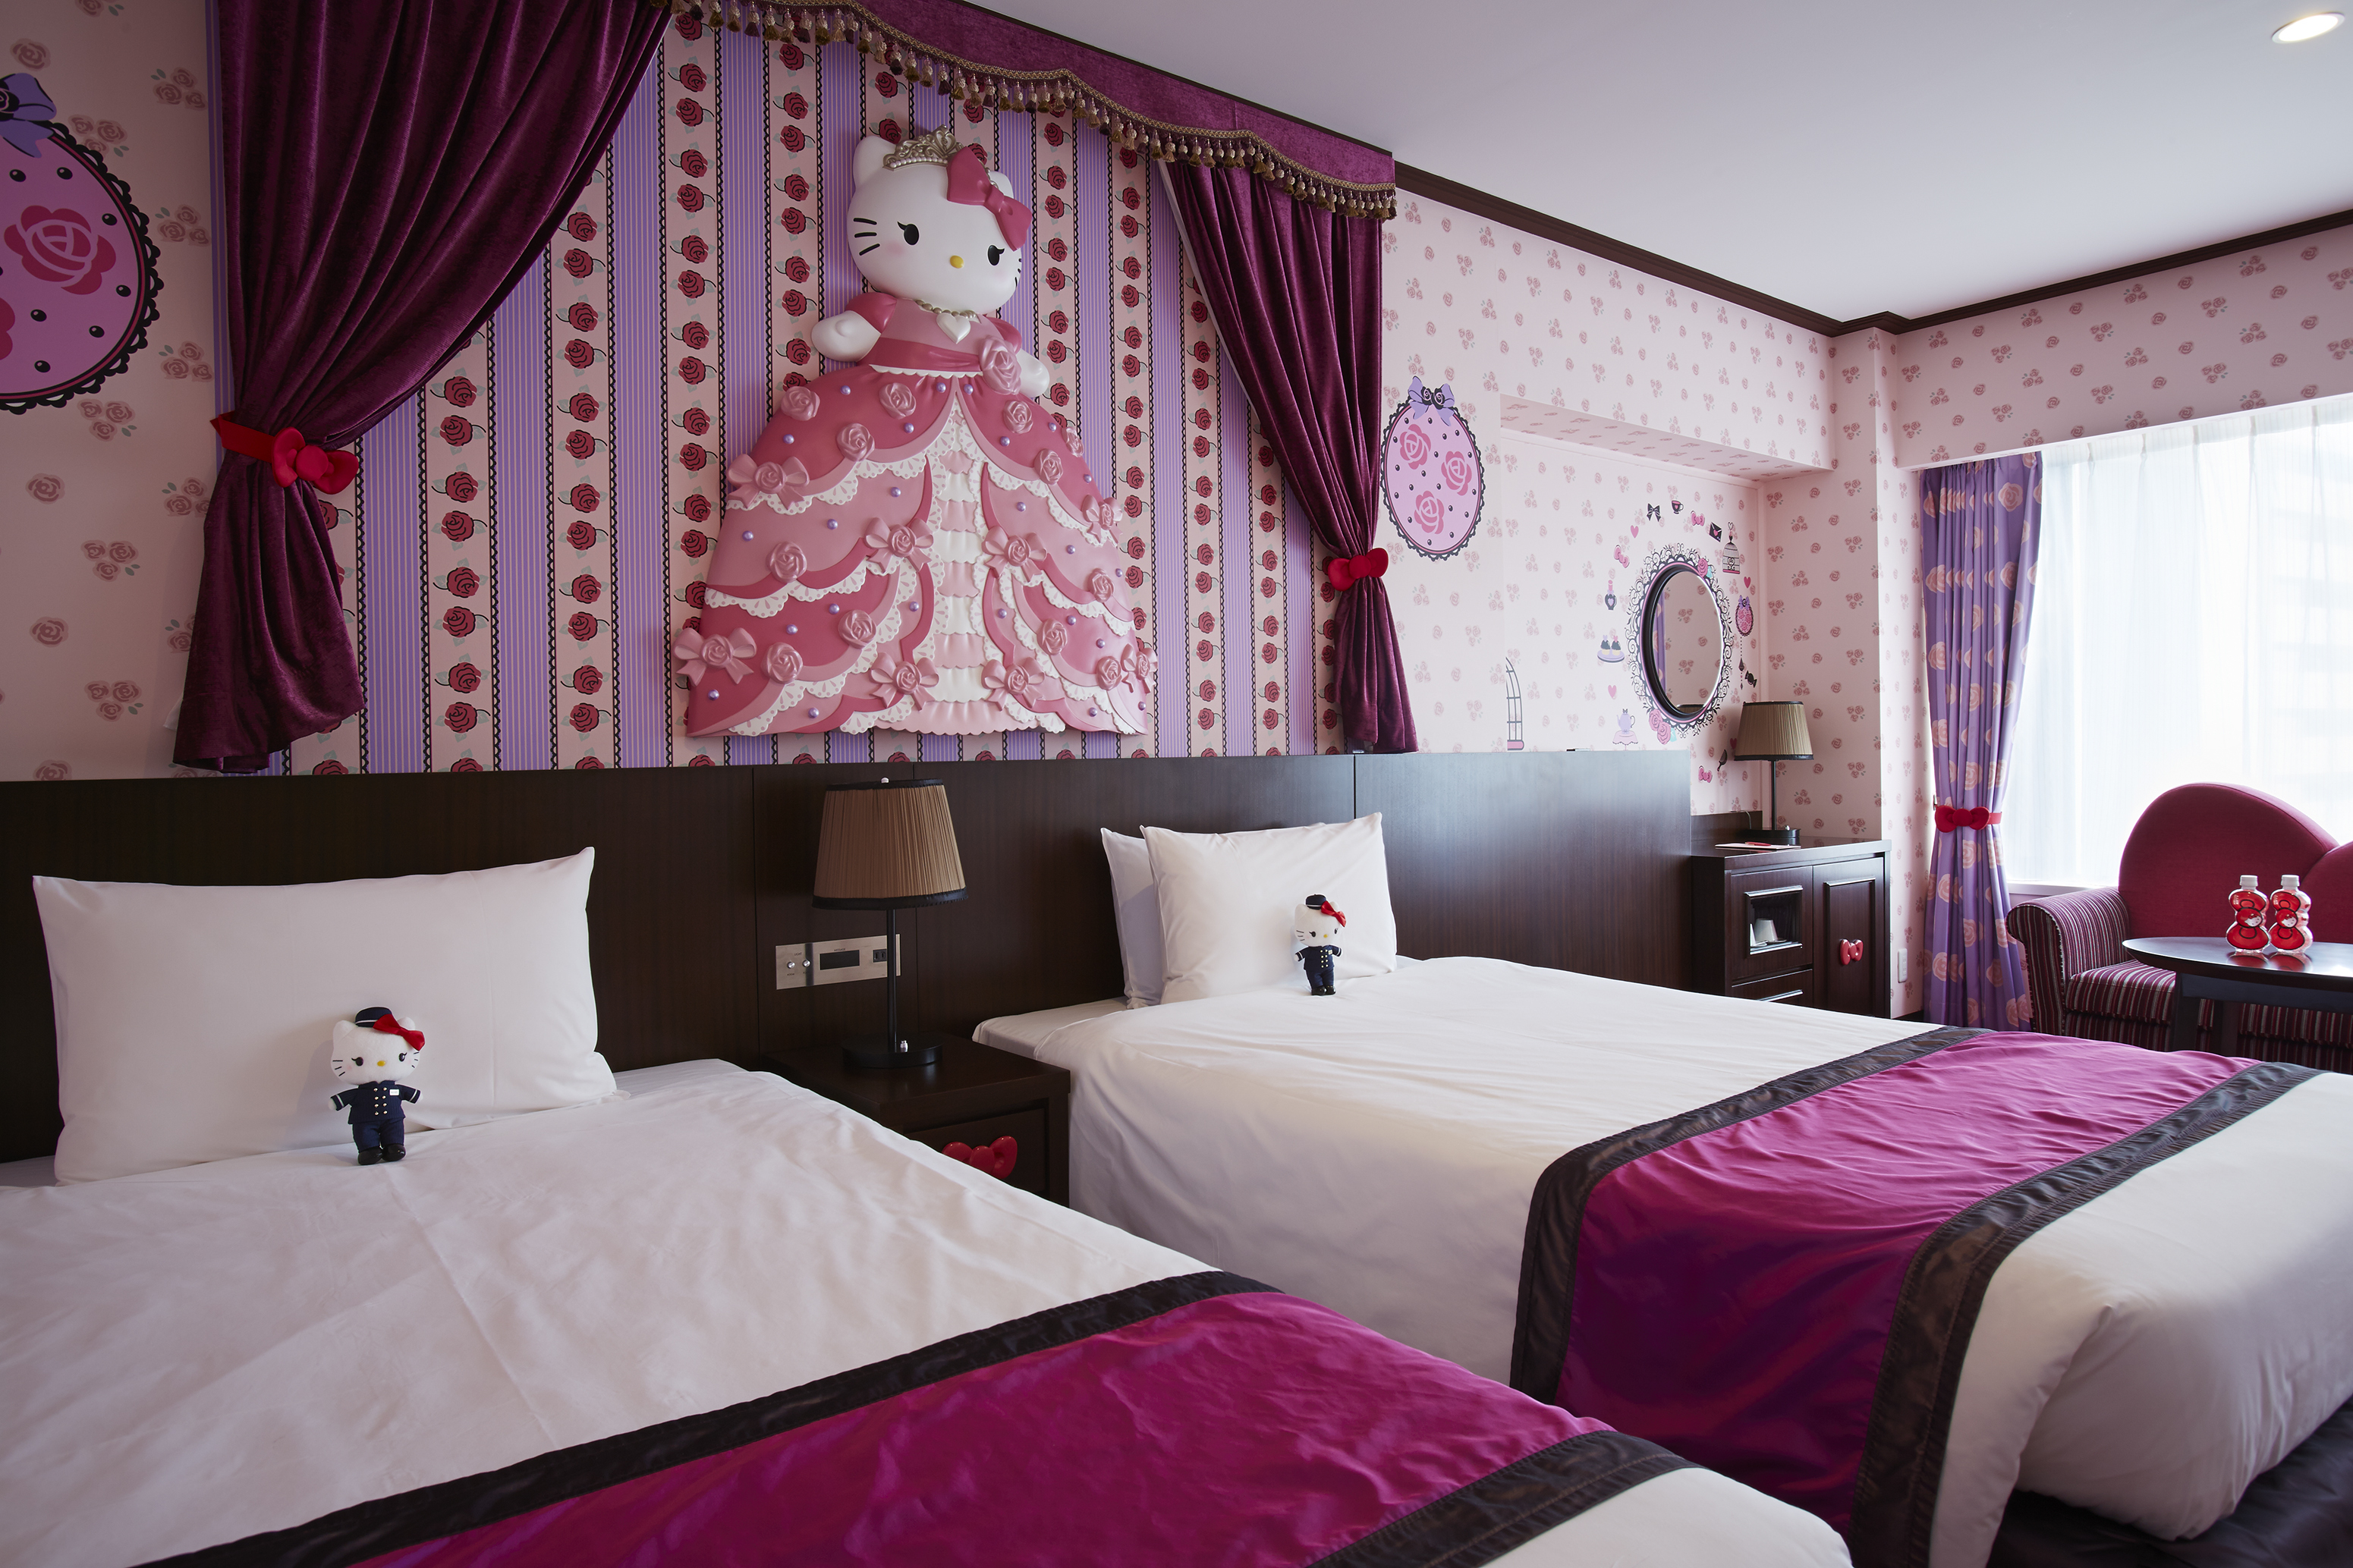 Keio Plaza Hotel Tokyo S Limited Time Offer For Hello Kitty Room Guests Special Present Of Doll In A Bell Staffs Uniform Business Wire